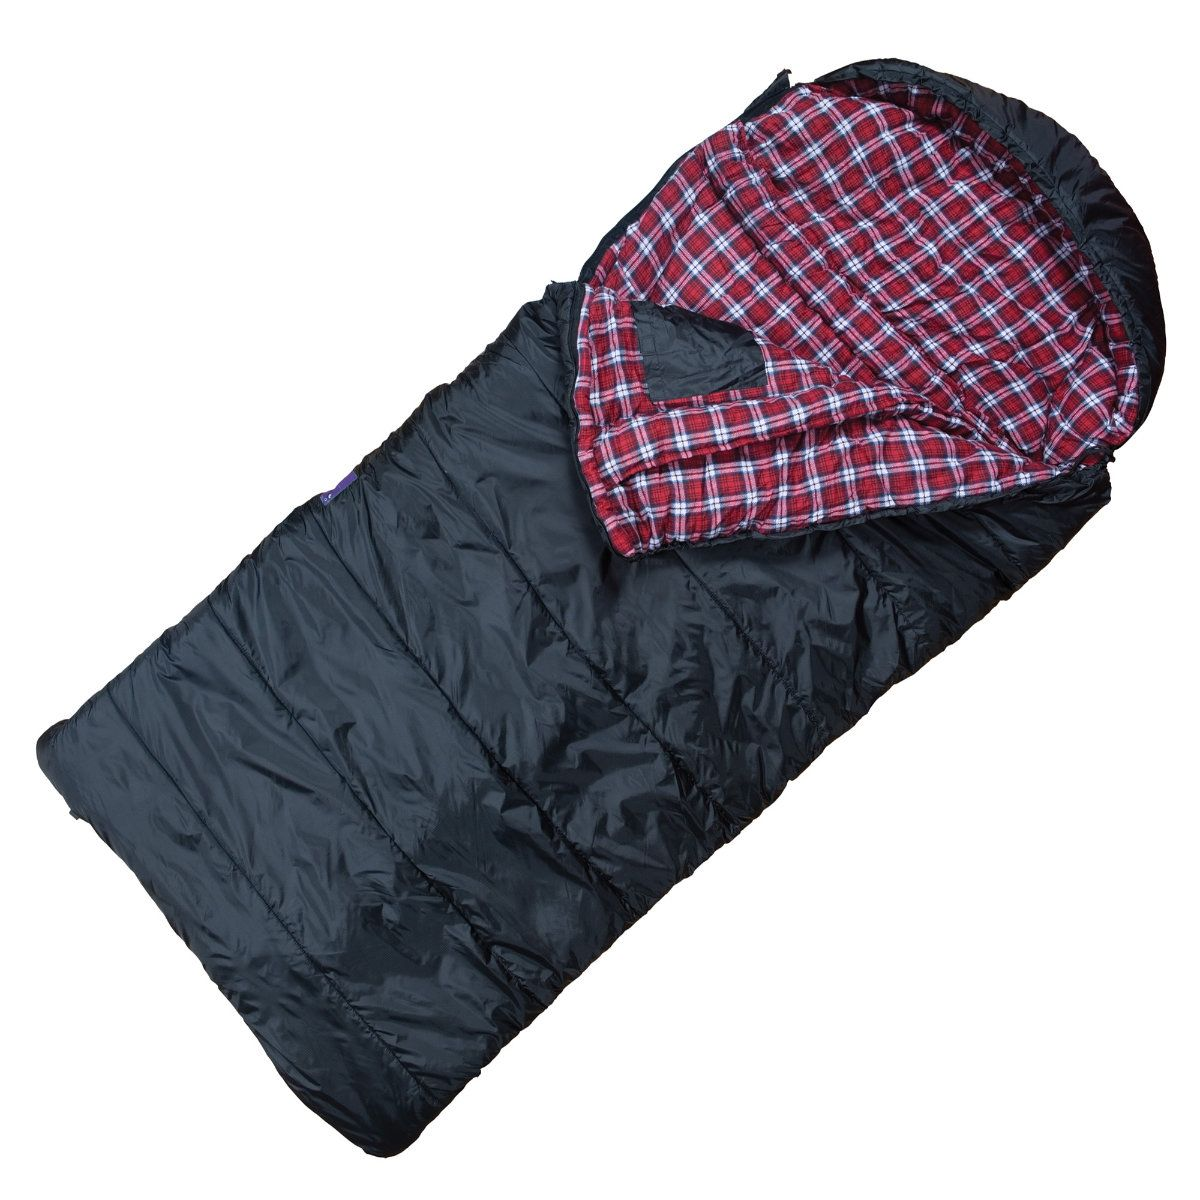 wholesale dealer a206a ac380 Gander Mountain Yukon 0F Sleeping Bag-440079 - Gander ...